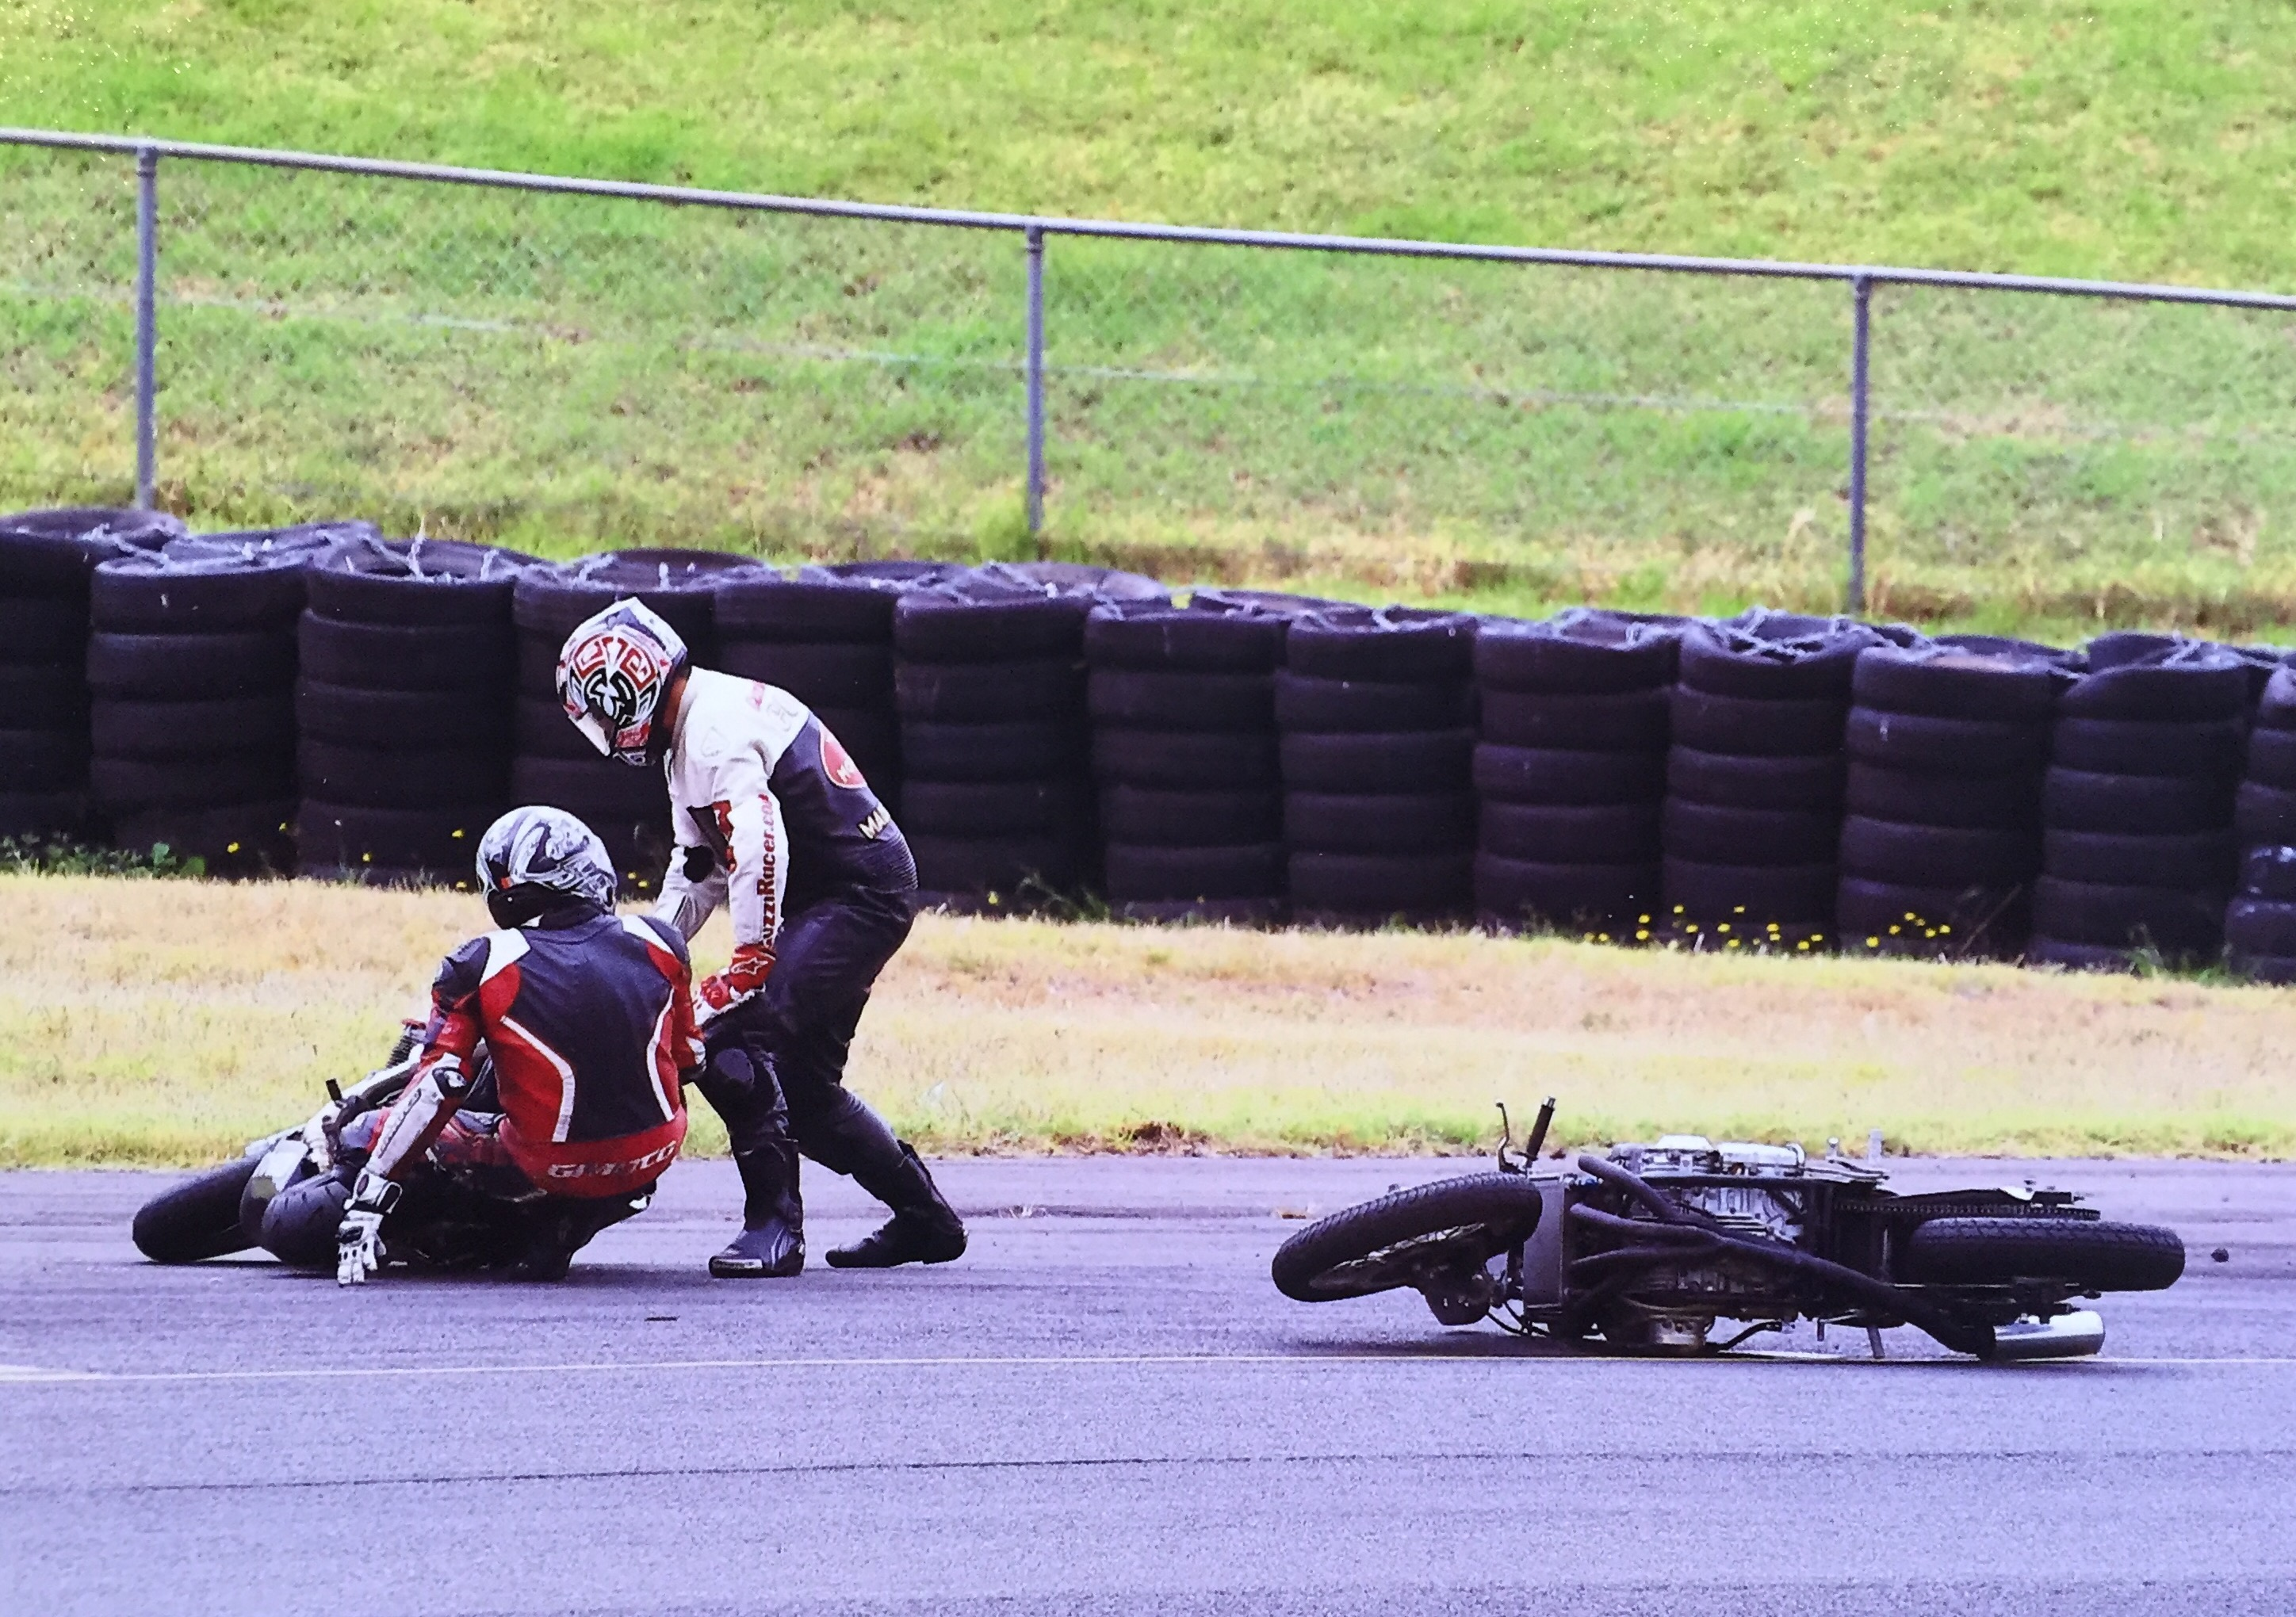 Bizzare accident at Barry Sheene Festival2015